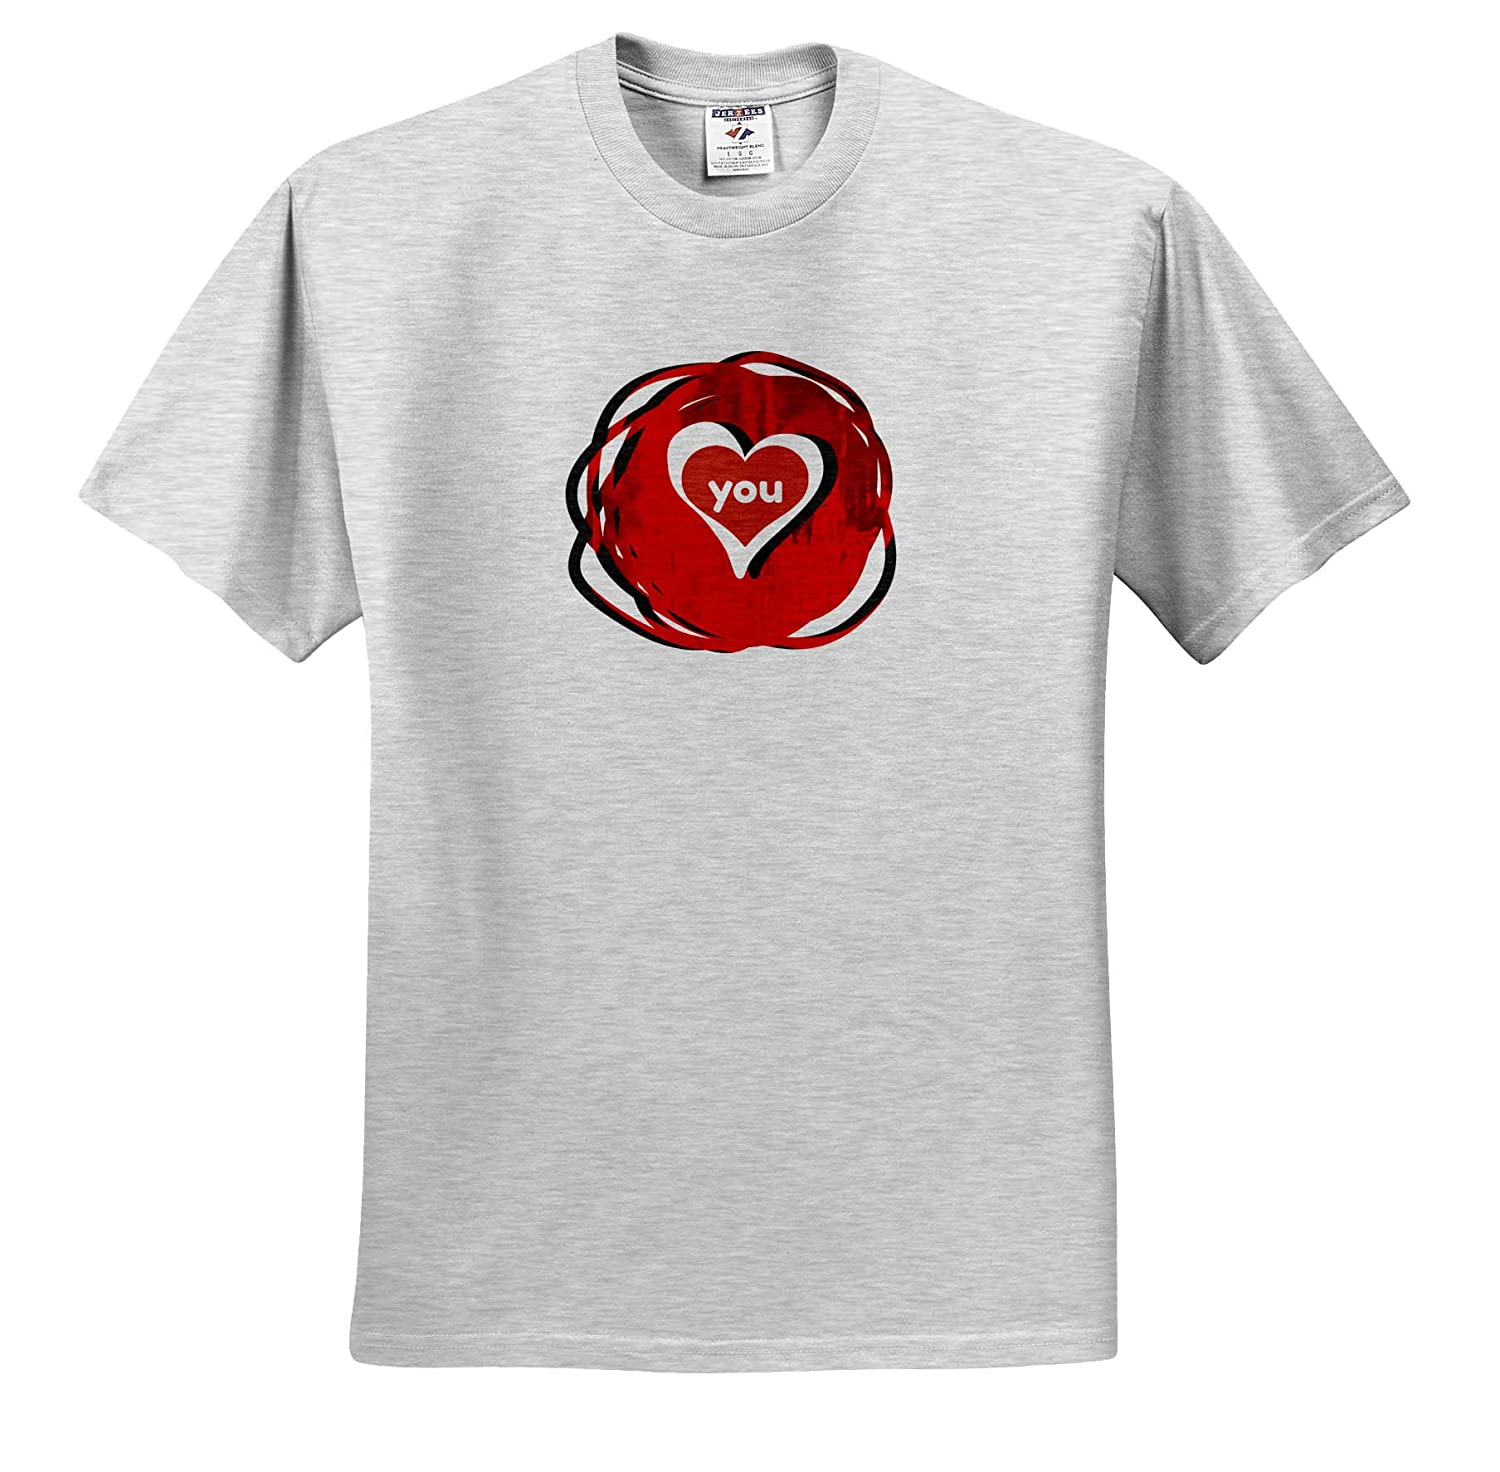 ts/_318608 3dRose Carrie Quote Image Adult T-Shirt XL Quote Image of Heart You